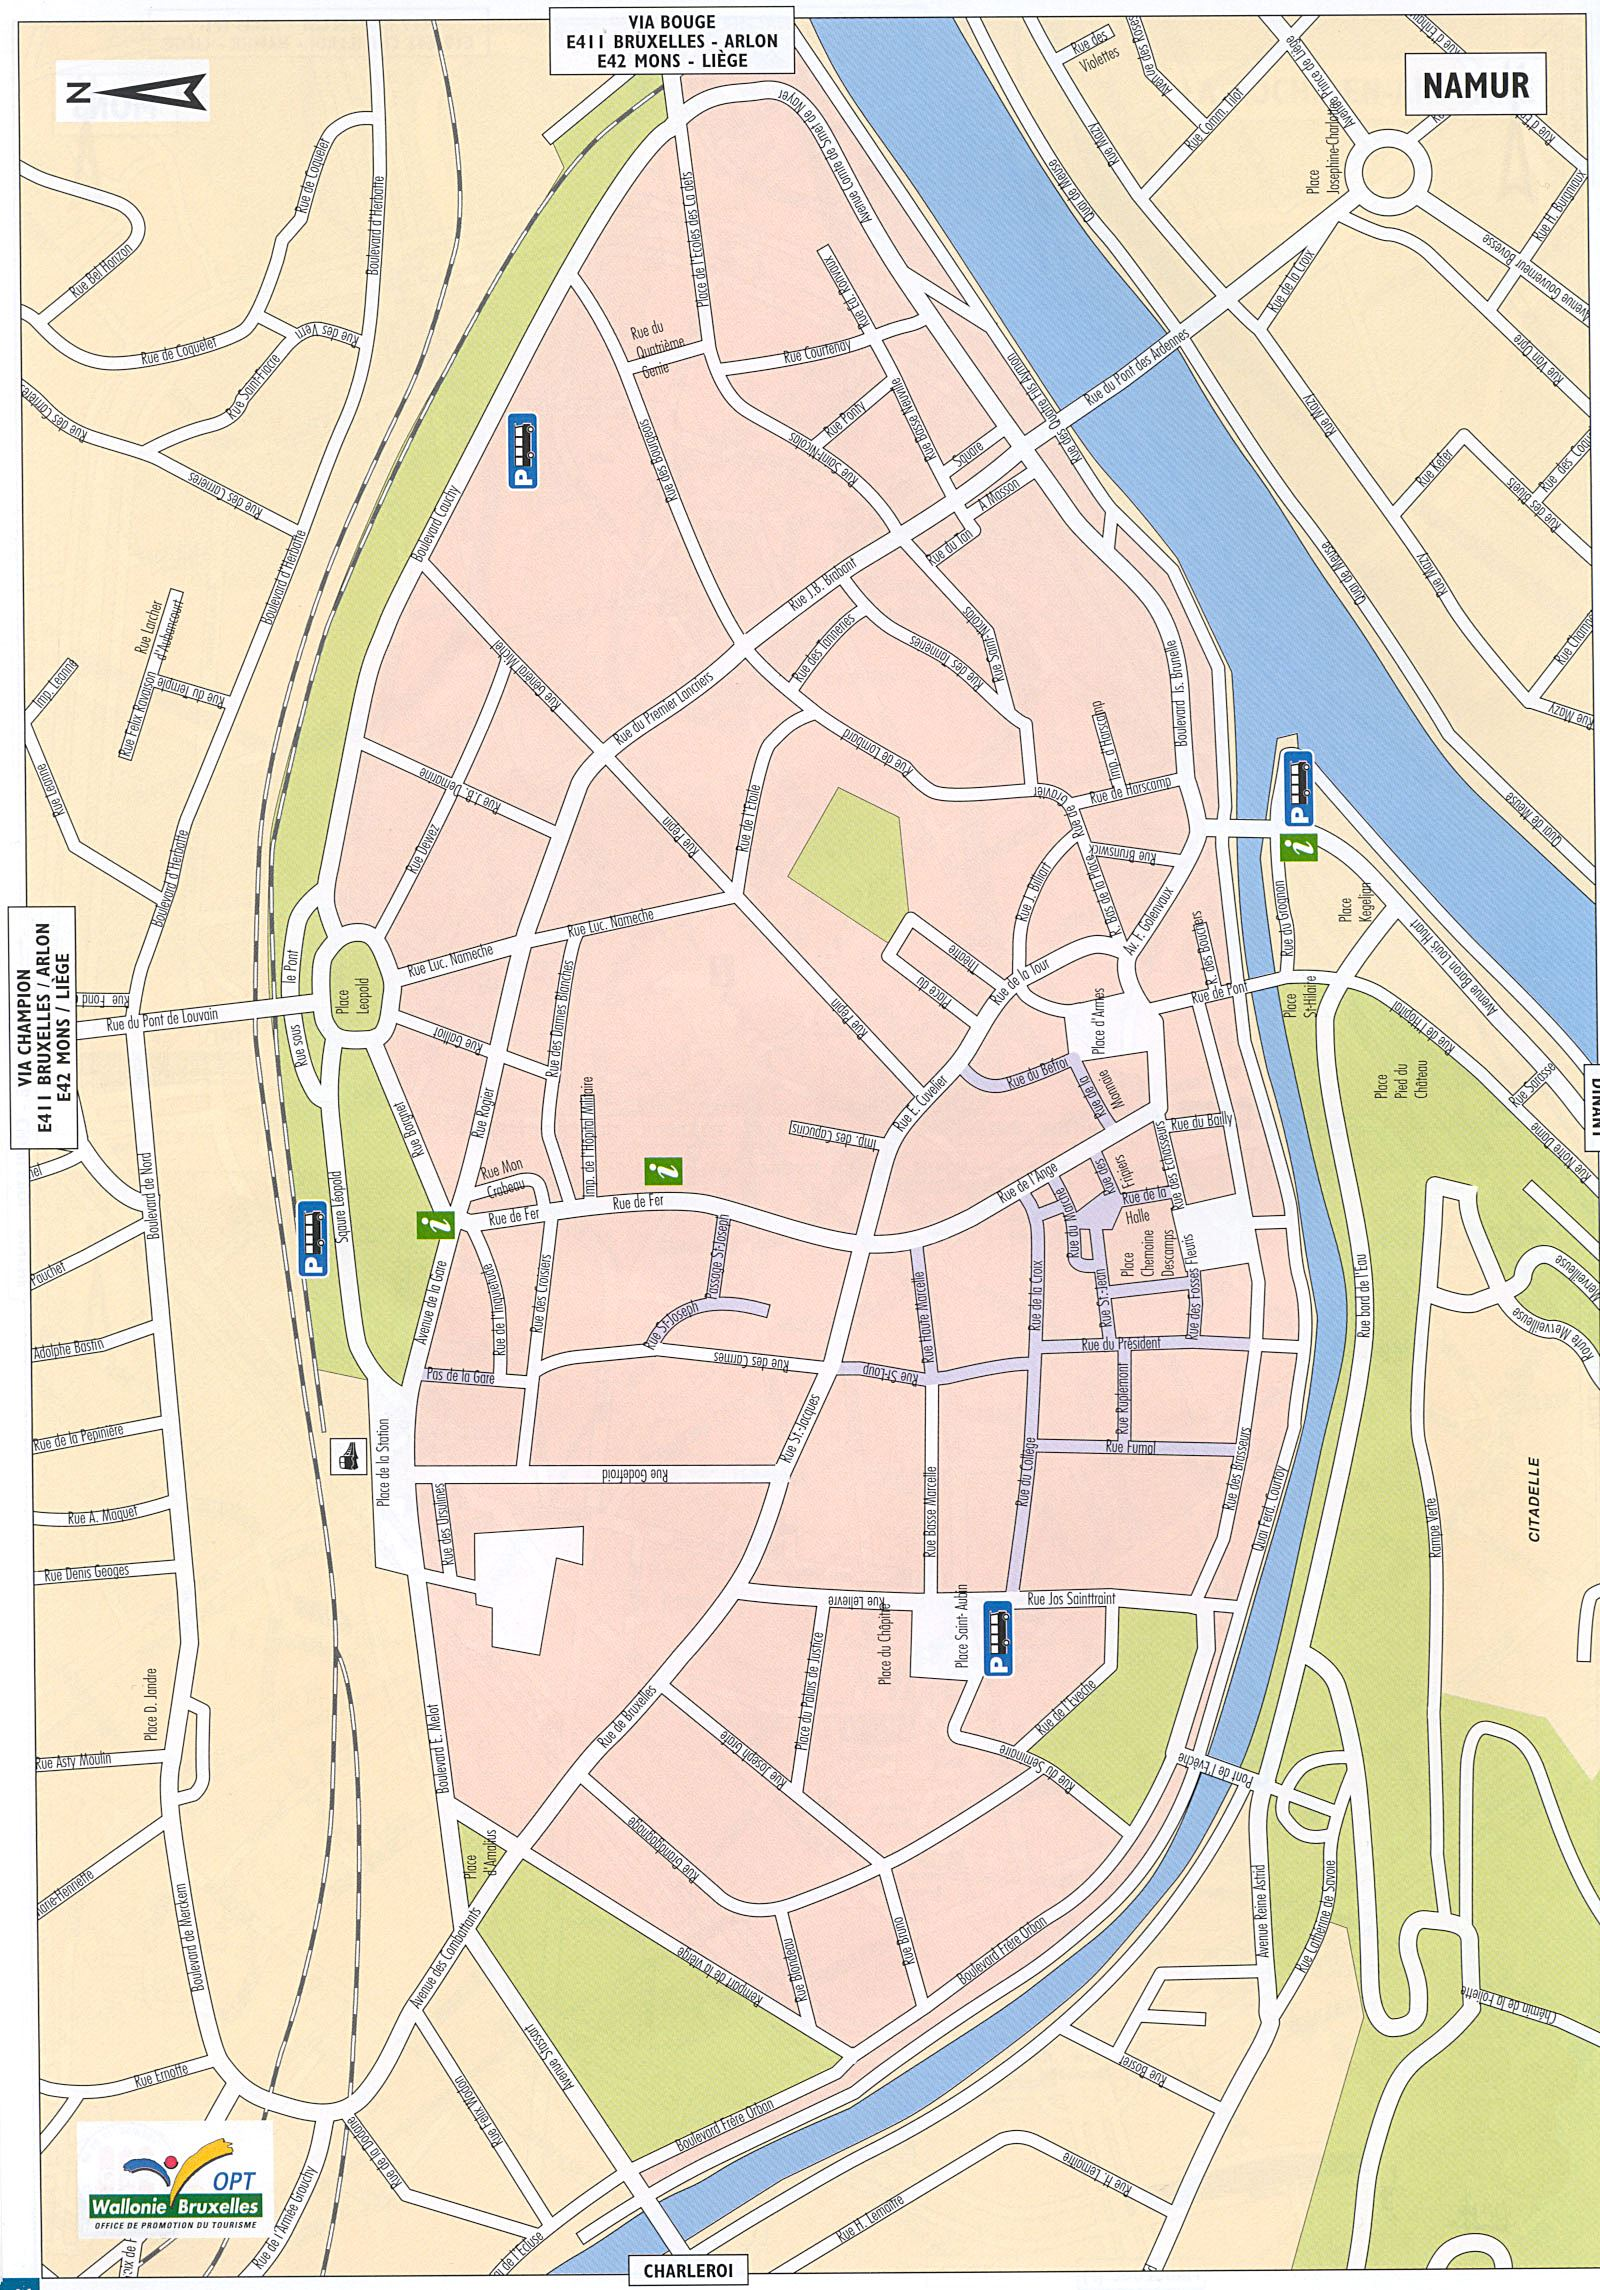 Large Namur Maps for Free Download and Print HighResolution and